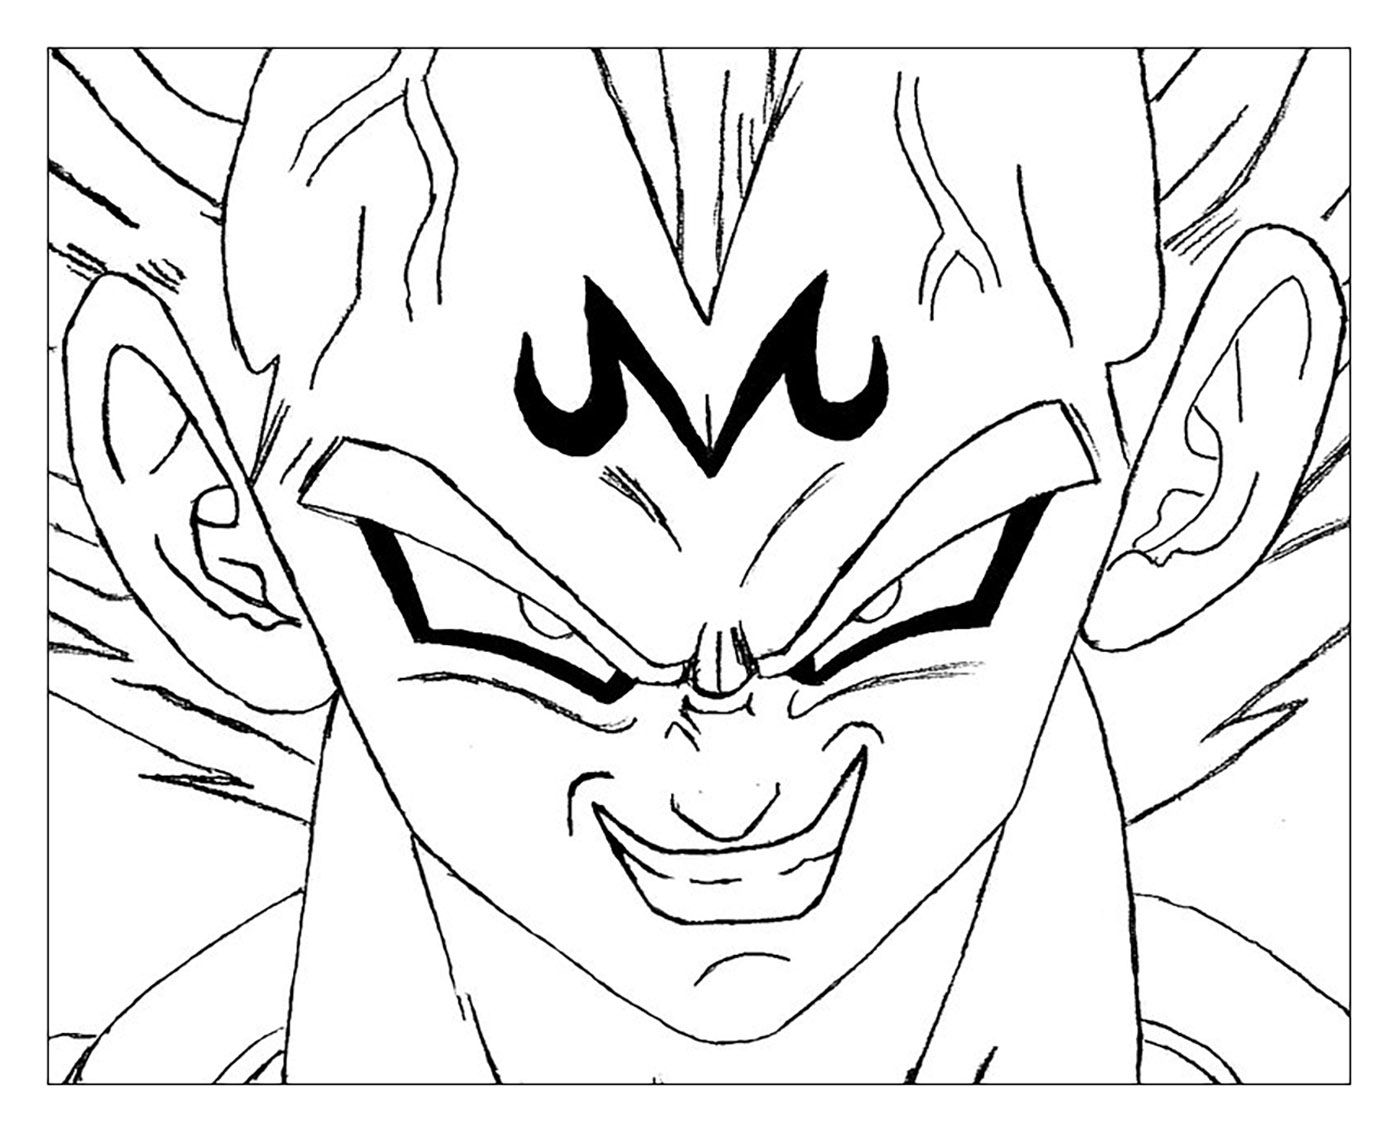 Facile Dragon Ball Majin Vegeta Coloriage Dragon Ball Z Coloriages Pour Enfants Coloriage Dragon Ball Z Coloriage Dragon Ball Coloriage Dragon